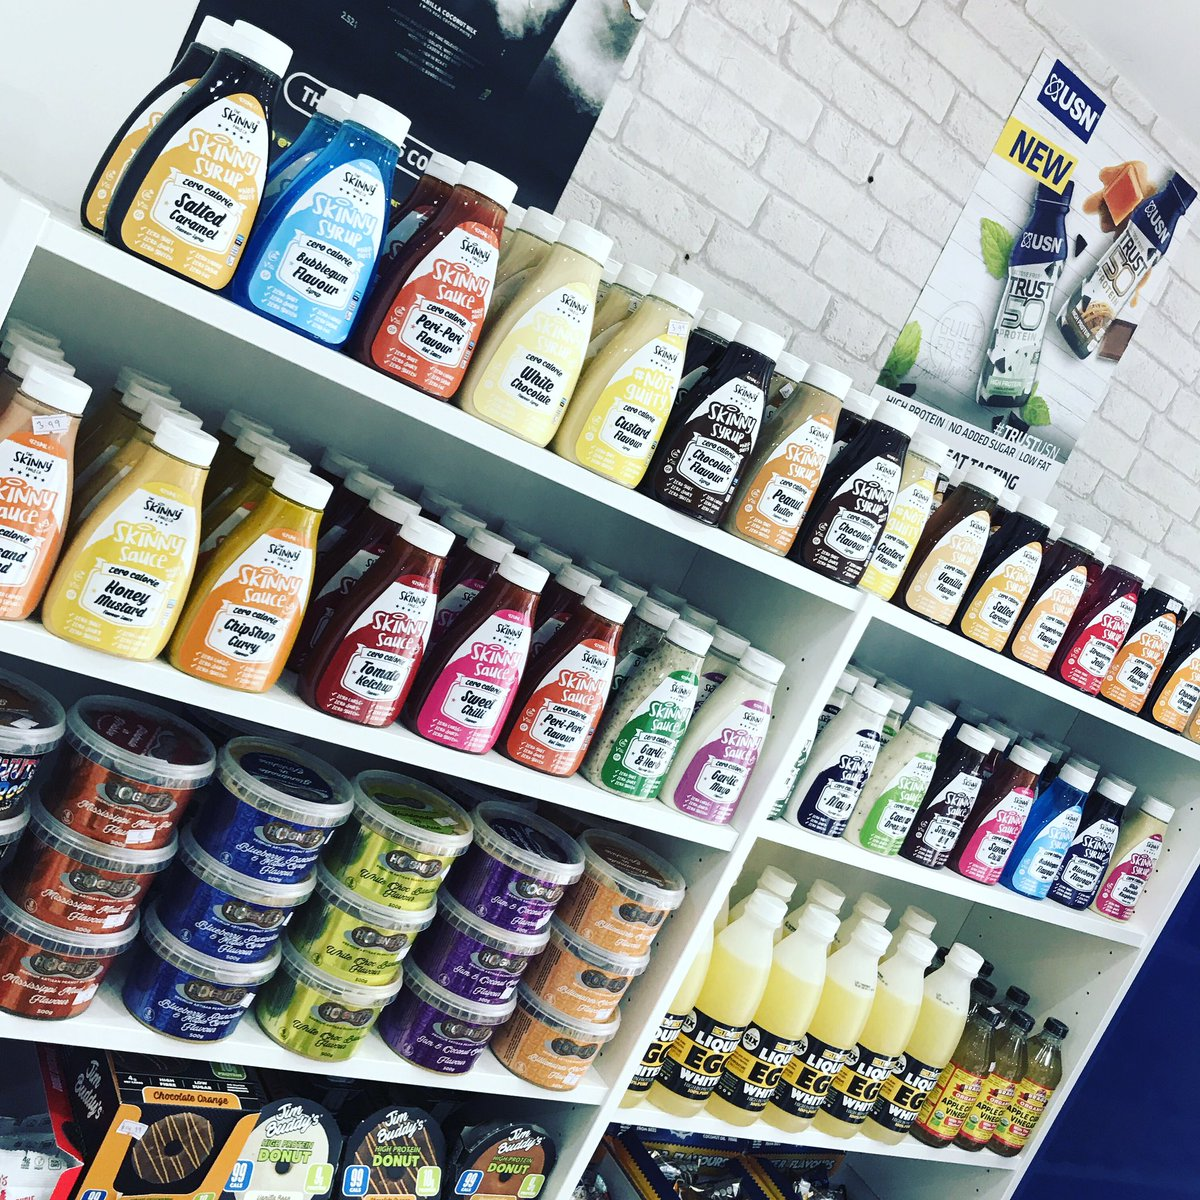 We are Re stocked of The @skinnyfoodco zero #calorie sauces Now available in flavours #bubblegum #blueberry #whitechocraspberry #garlicandherb We offer free same day local #delivery Click on the link to #purchase supplementking.uk/brand/the-skin…